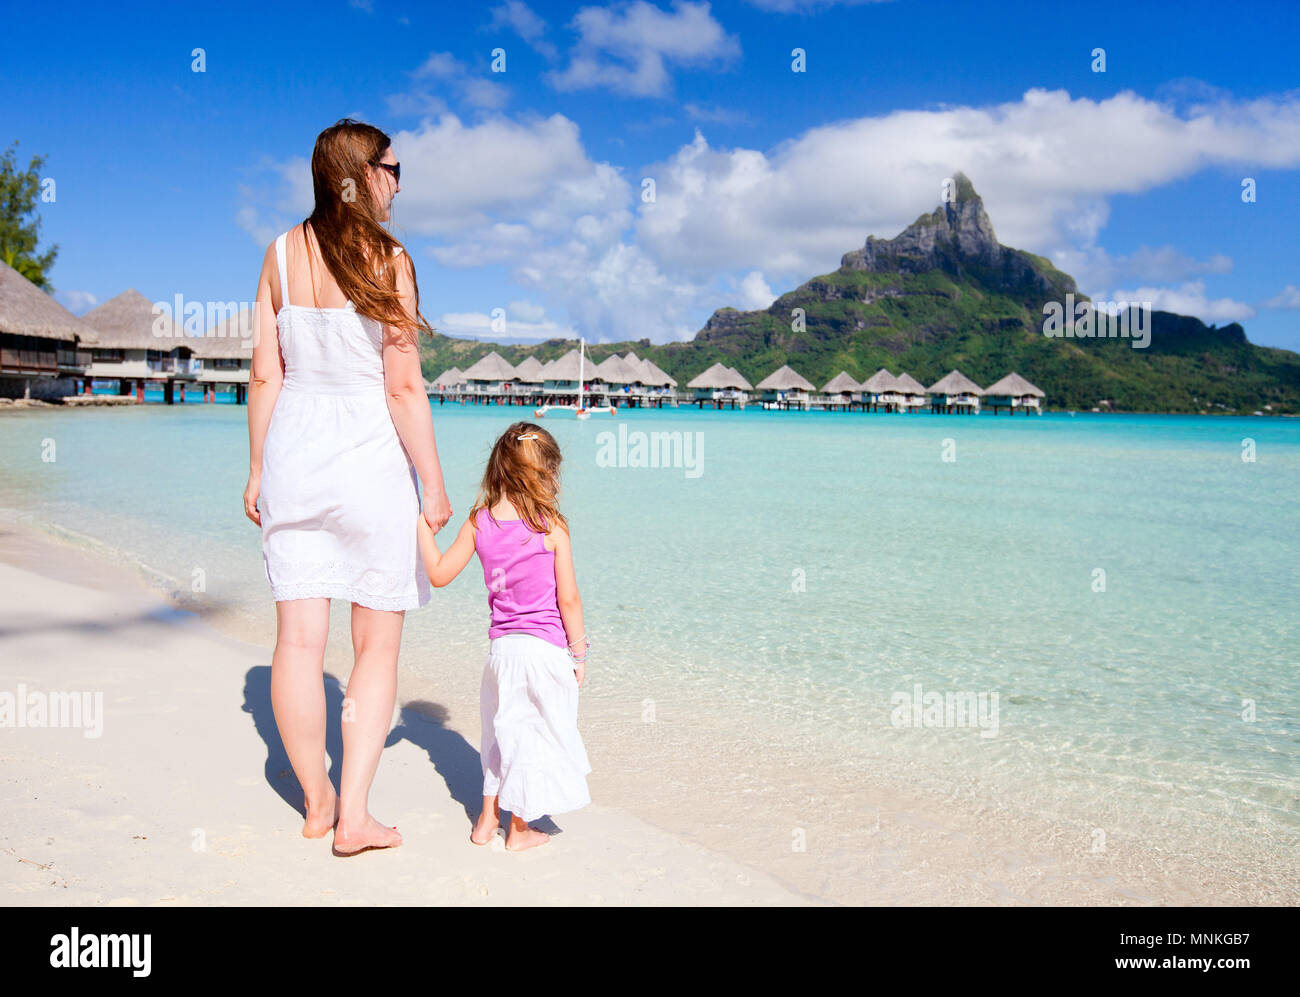 Mother and daughter at tropical beach enjoying view of Otemanu mountain - Stock Image